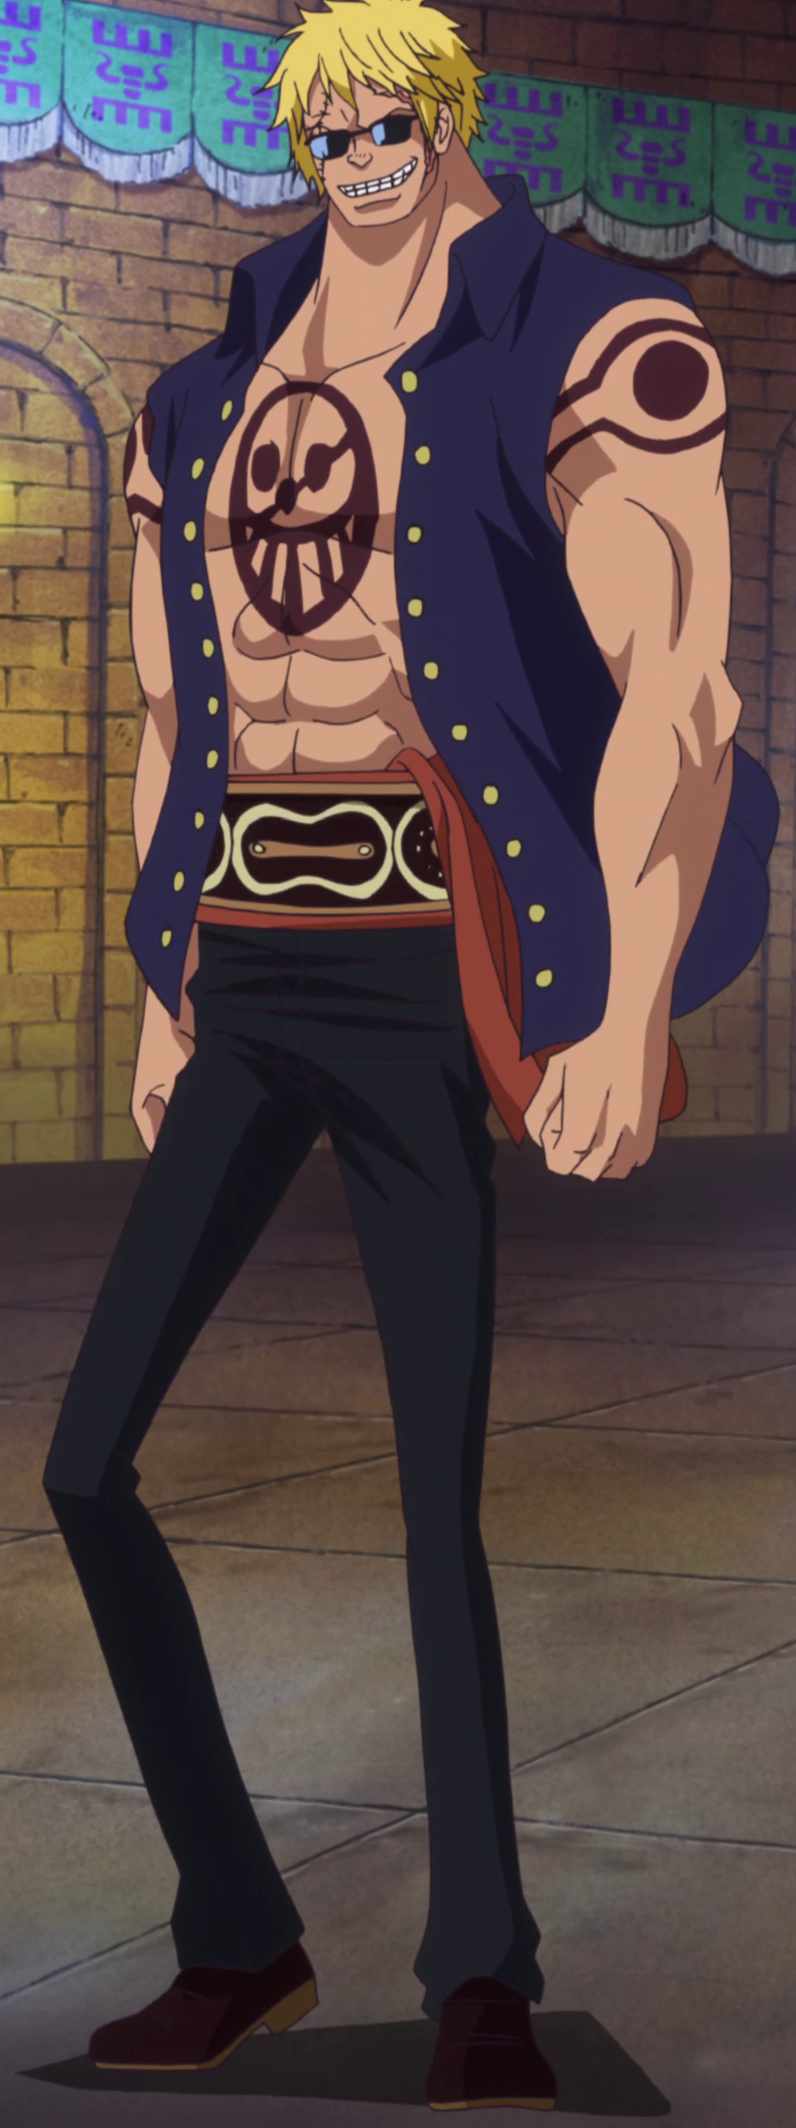 Never skip leg day. Bellamy the Hyena from One Piece... Well when you can turn your legs into huge ass springs, there's really no need for leg day. Pretty much anyone who laughs at your disproportionate legs is a dea